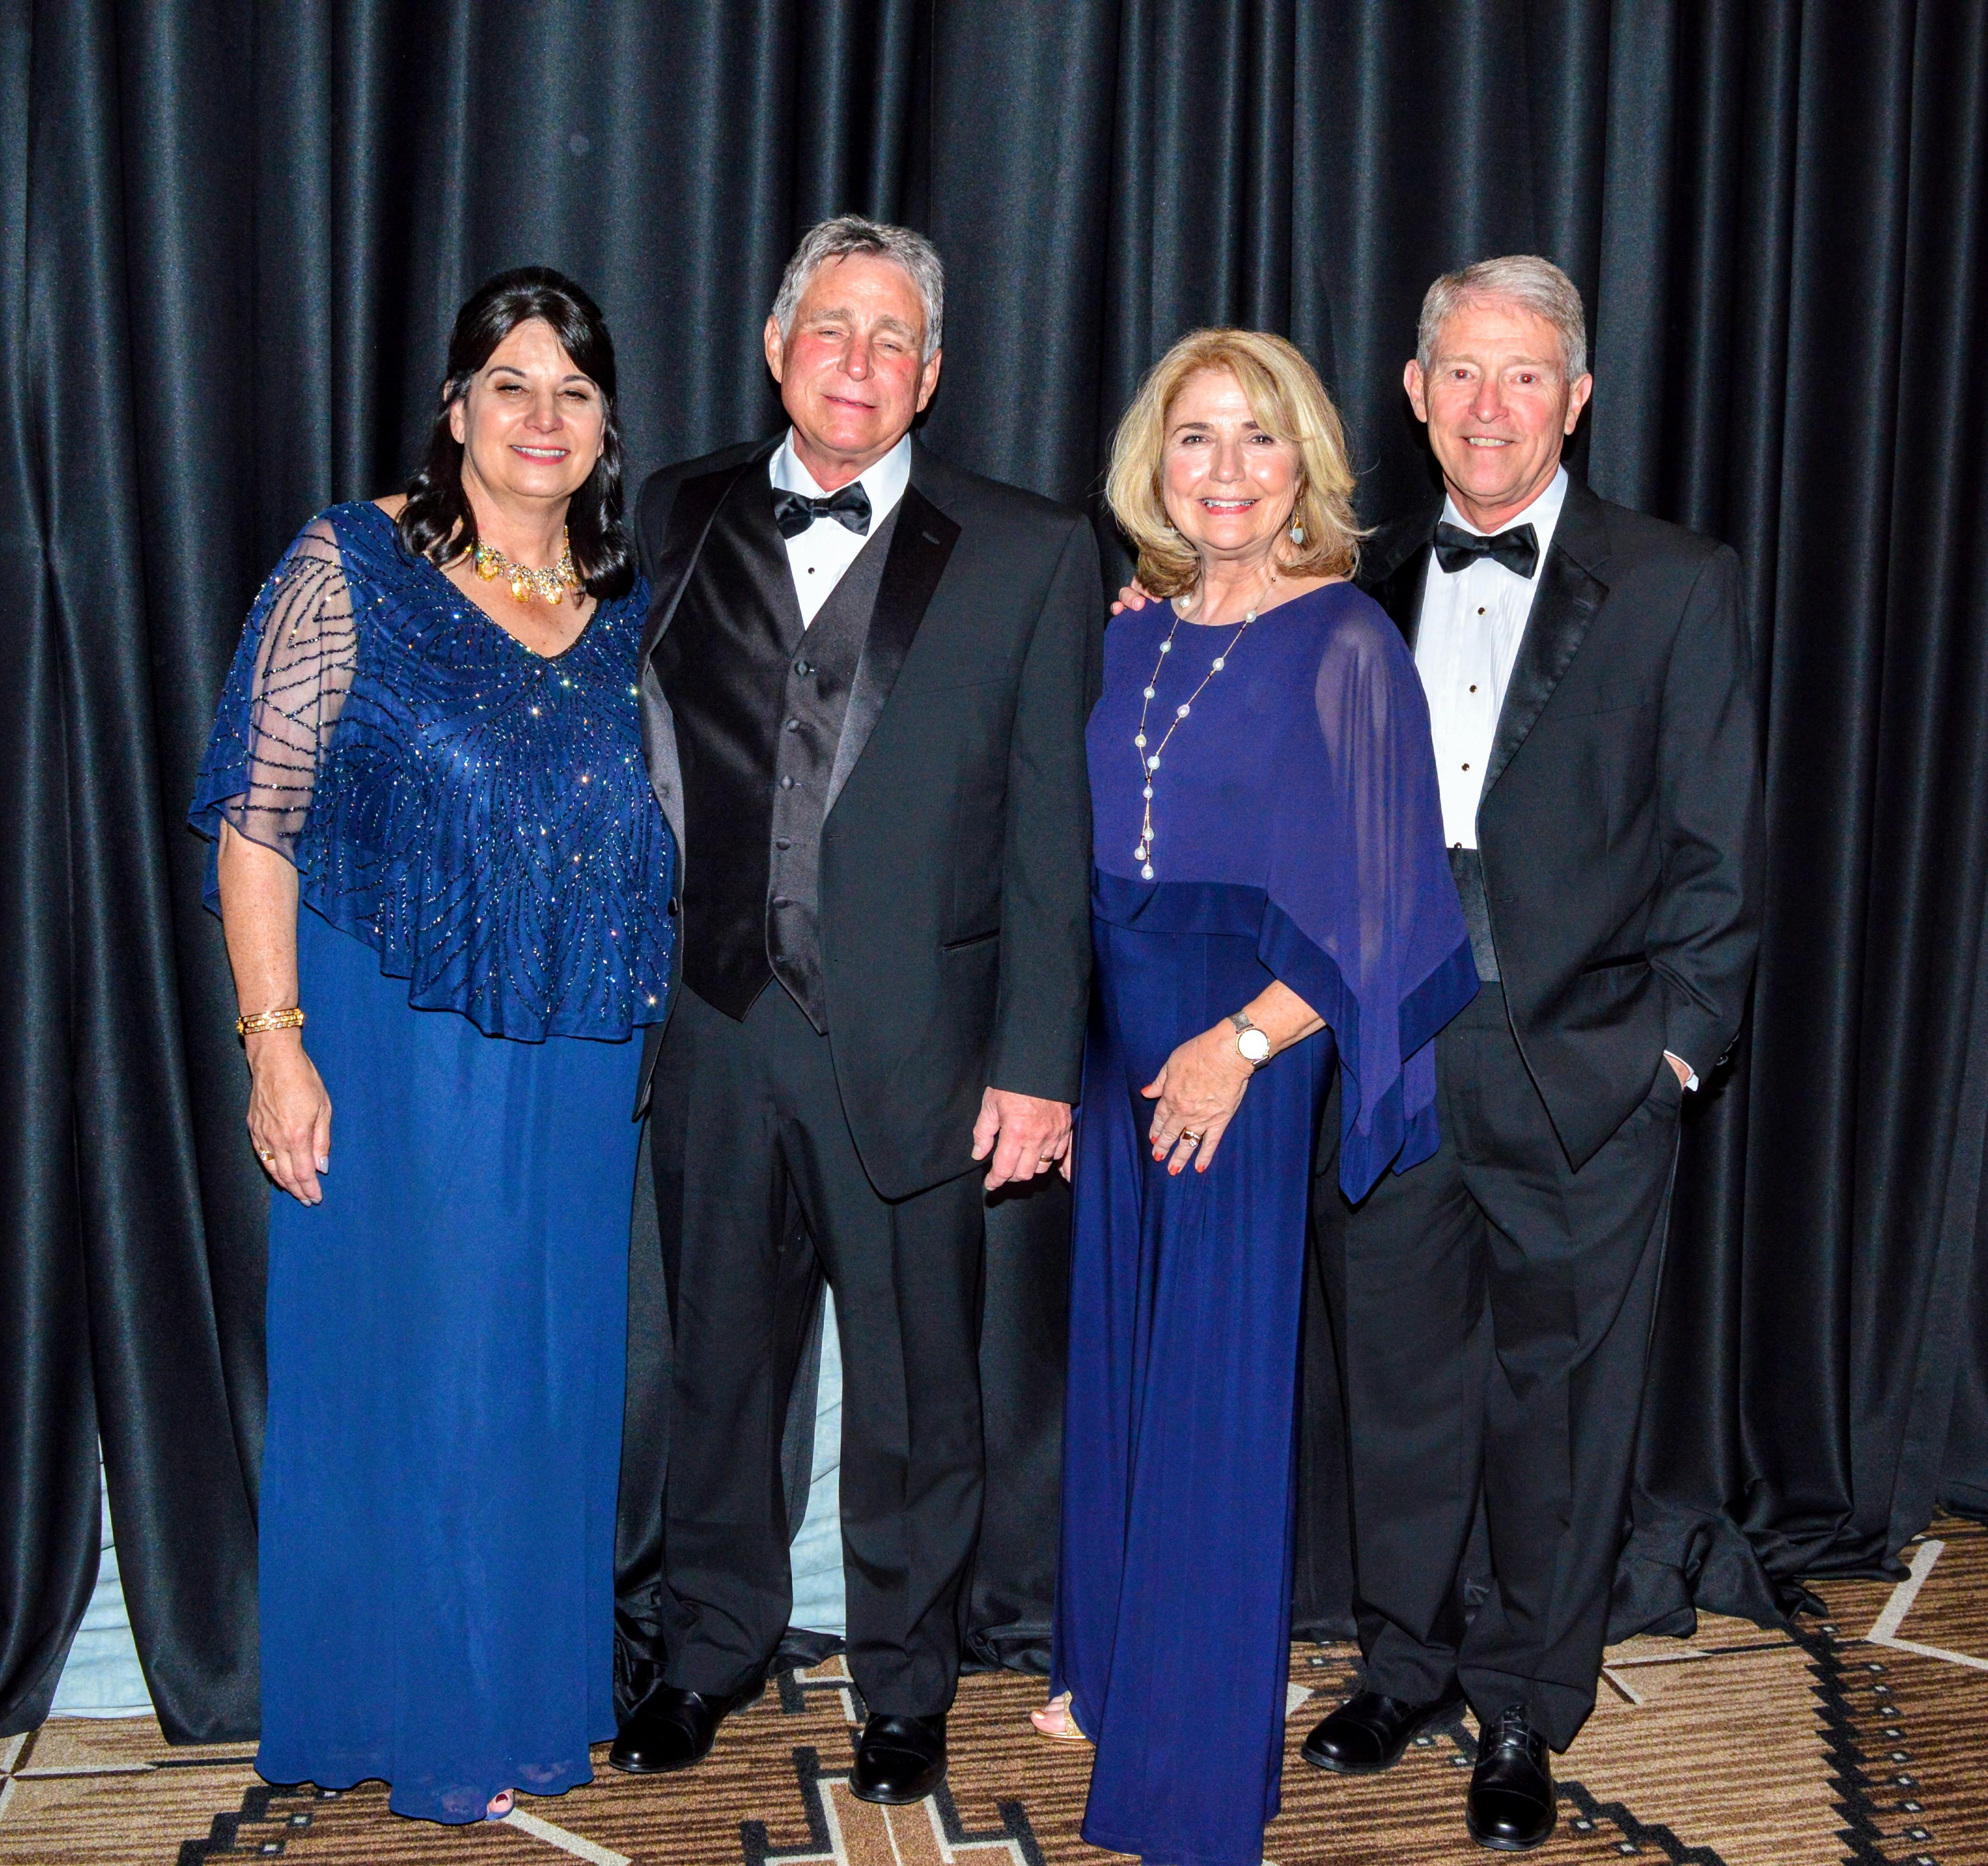 2018-2019 Co-Presidents Renee Grout and Teena King with husbands Jim Grout and Jerry King